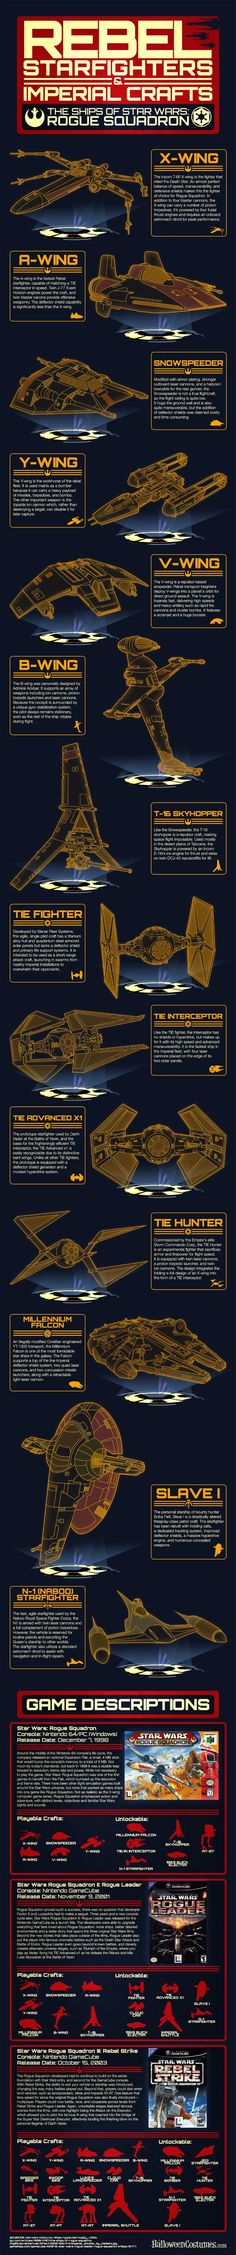 Star Wars Rogue Squadron Infographic